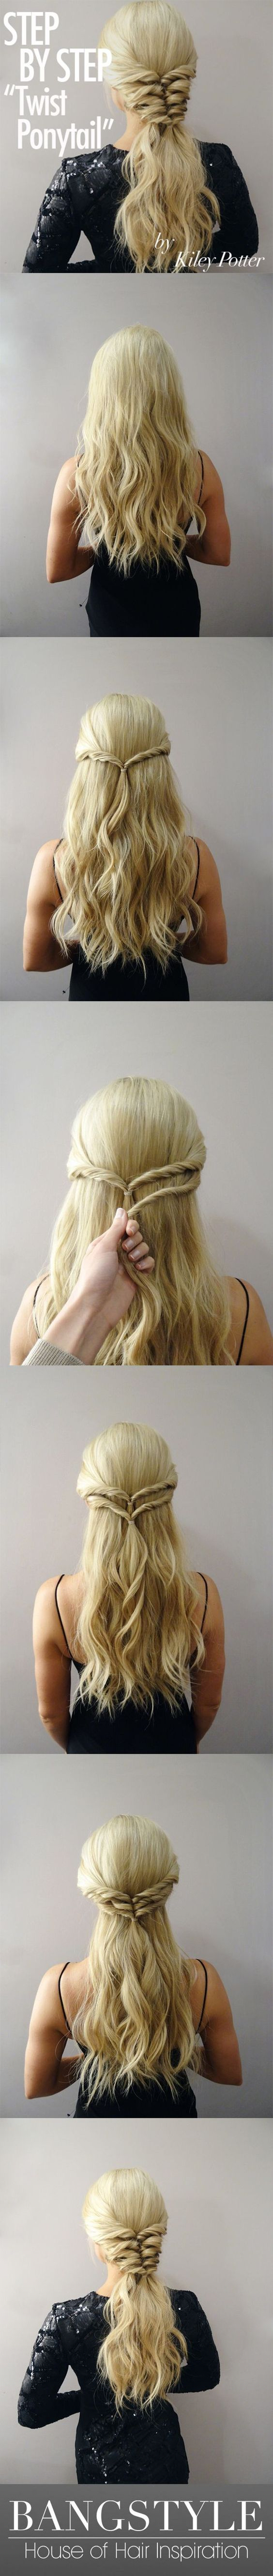 Can't decide between a pony tail and a braid? Bring both together in perfection with this Bangstyle tutorial!: